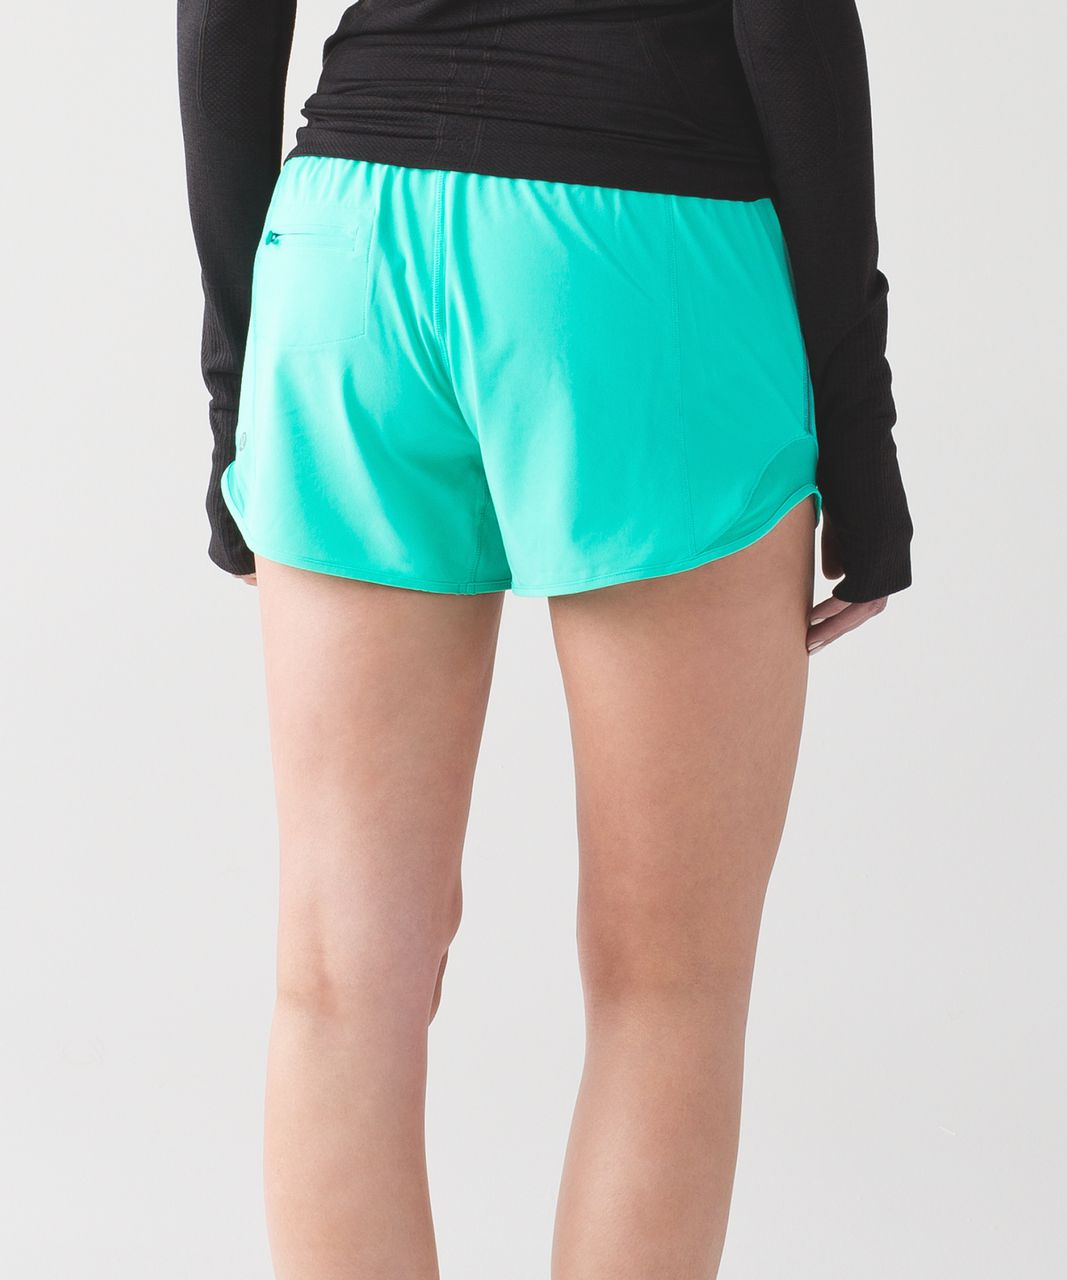 Lululemon Hotty Hot Short (Long) - Bali Breeze